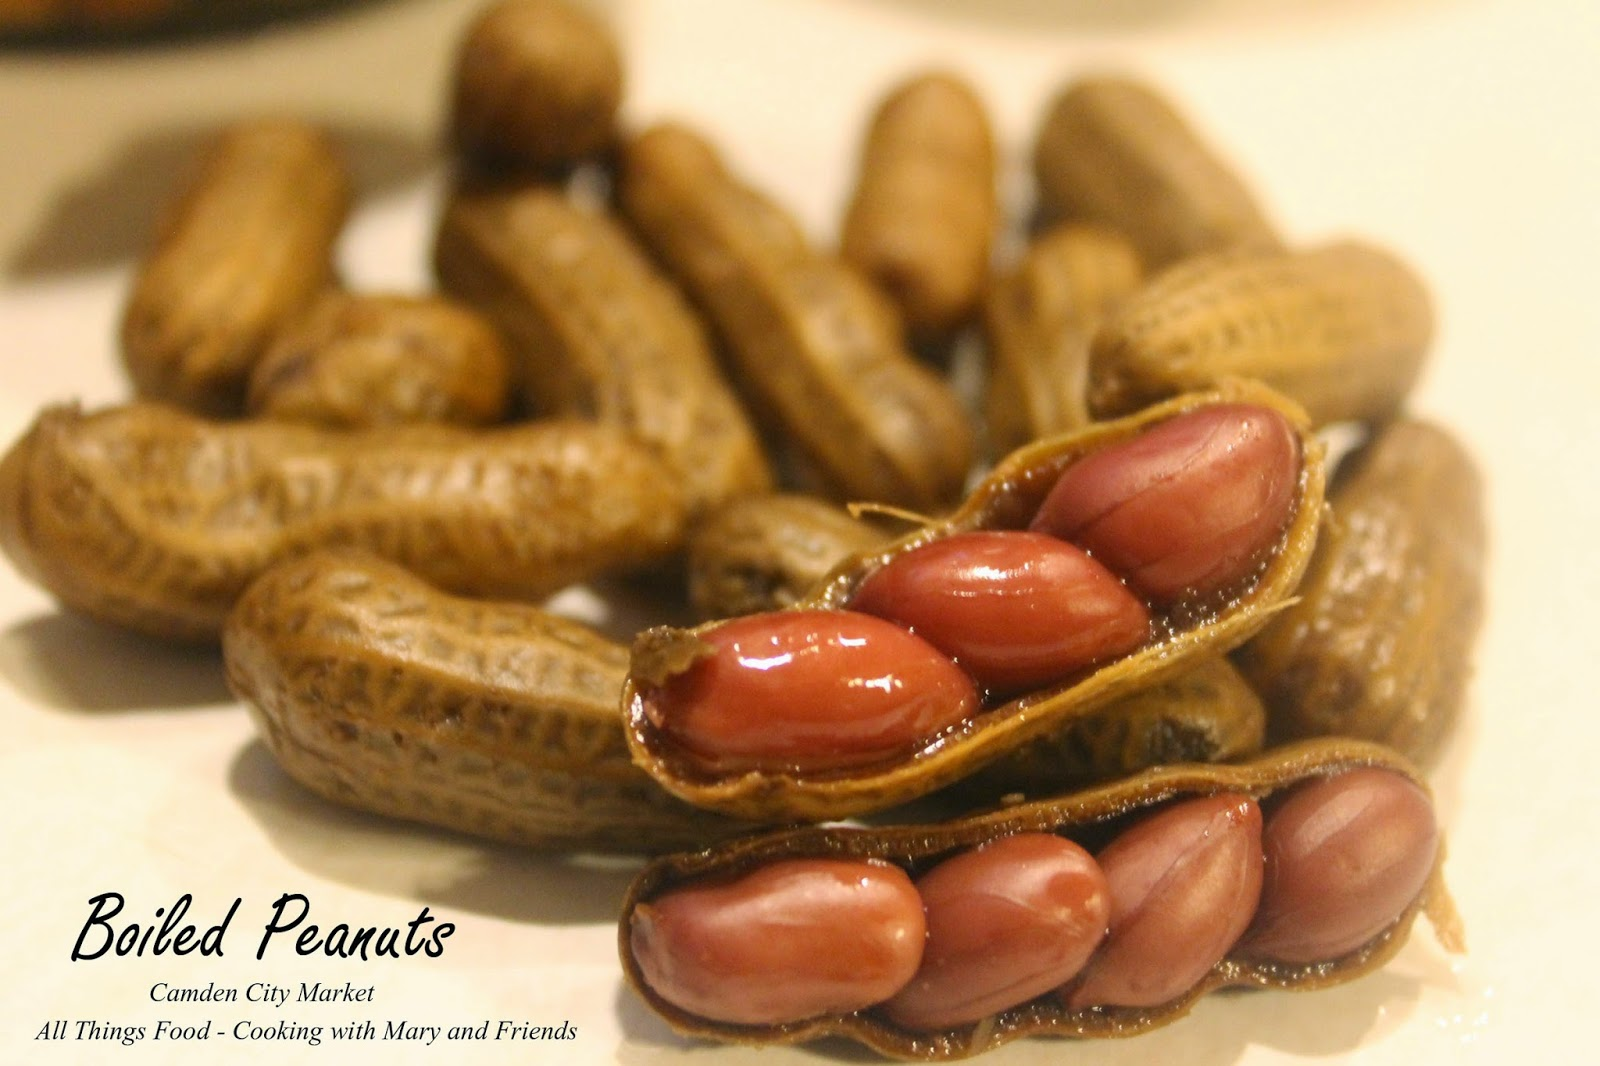 Cooking With Mary and Friends: Boiled Peanuts for freezing ...